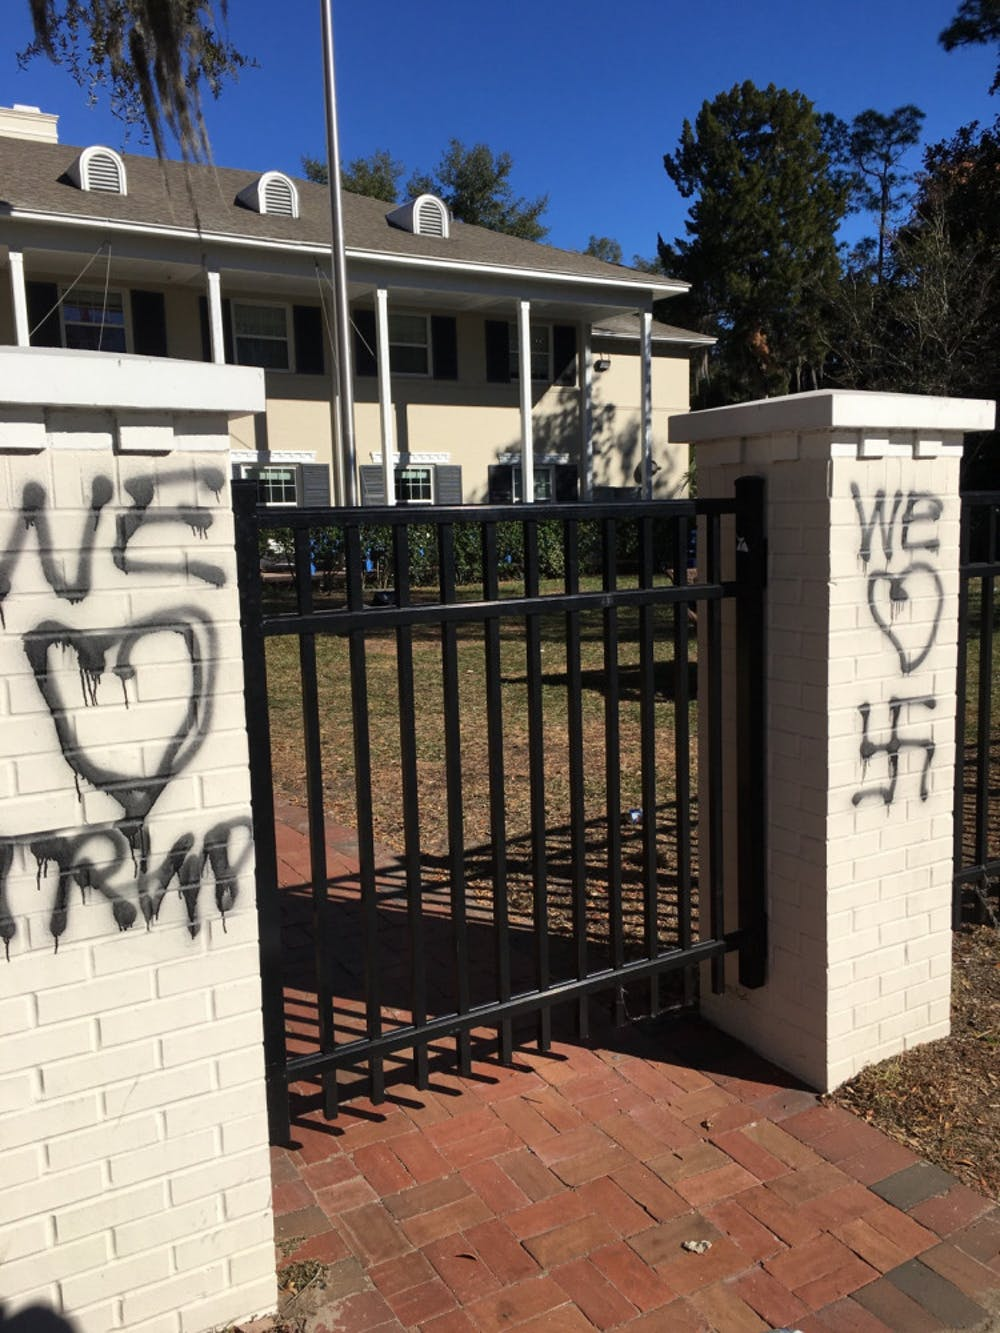 """<p><span>The UF chapter house of Delta Tau Delta was vandalized between <span class=""""aBn"""" data-term=""""goog_1056570203""""><span class=""""aQJ"""">Saturday</span></span> night and <span class=""""aBn"""" data-term=""""goog_1056570204""""><span class=""""aQJ"""">Sunday</span></span> morning.</span> <span>One column had a drawing of a heart over the swastika, another had a drawing of a heart over the word """"Trump"""" and the last had a drawing of a heart over the word """"rape.""""</span></p>"""